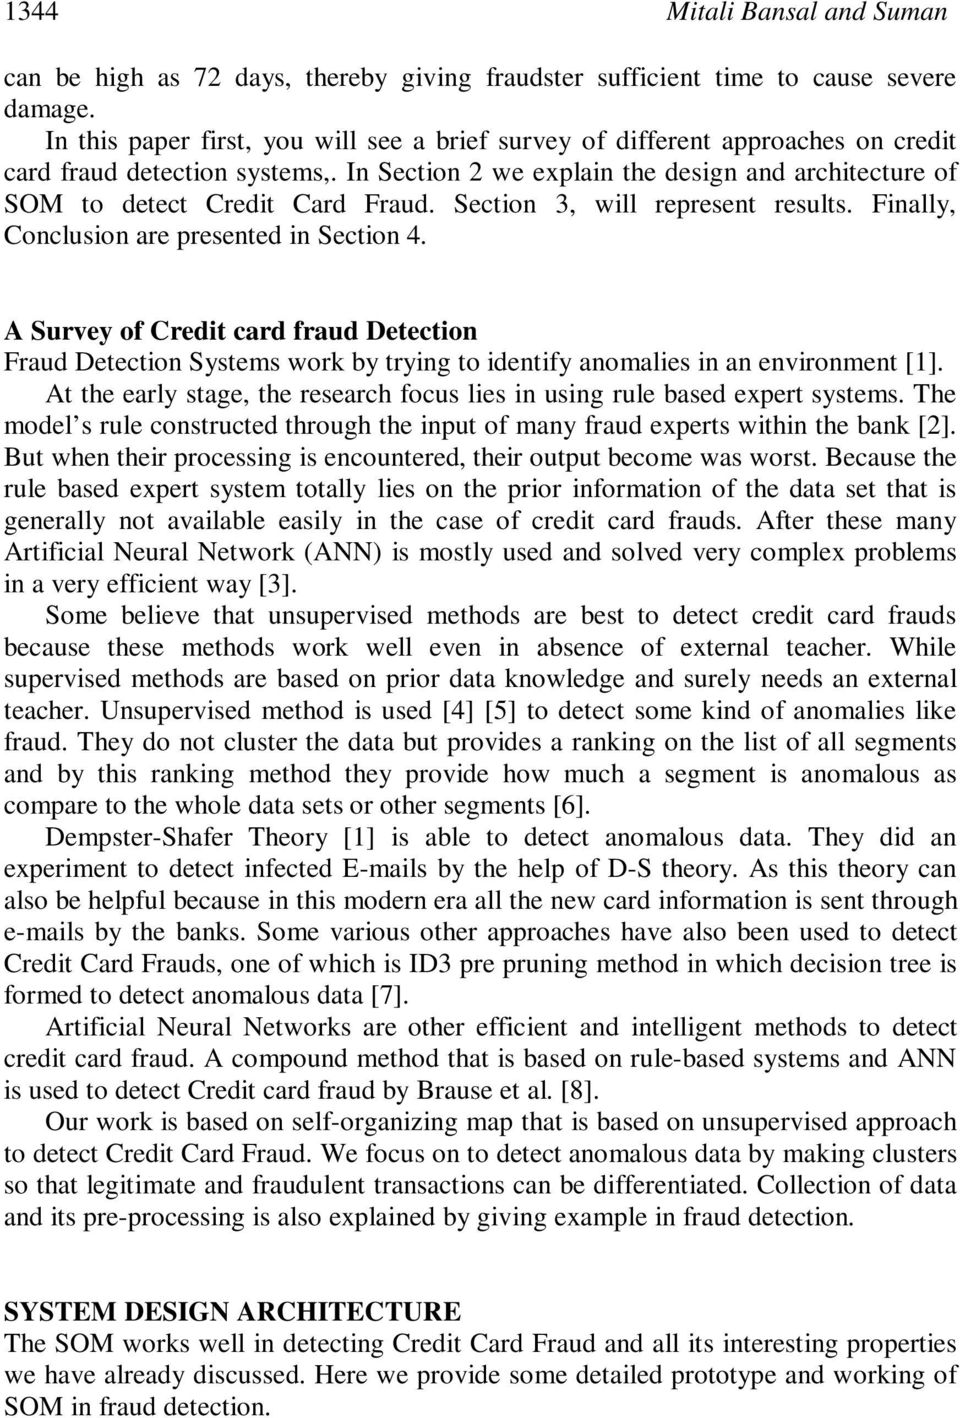 In Section 2 we explain the design and architecture of SOM to detect Credit Card Fraud. Section 3, will represent results. Finally, Conclusion are presented in Section 4.